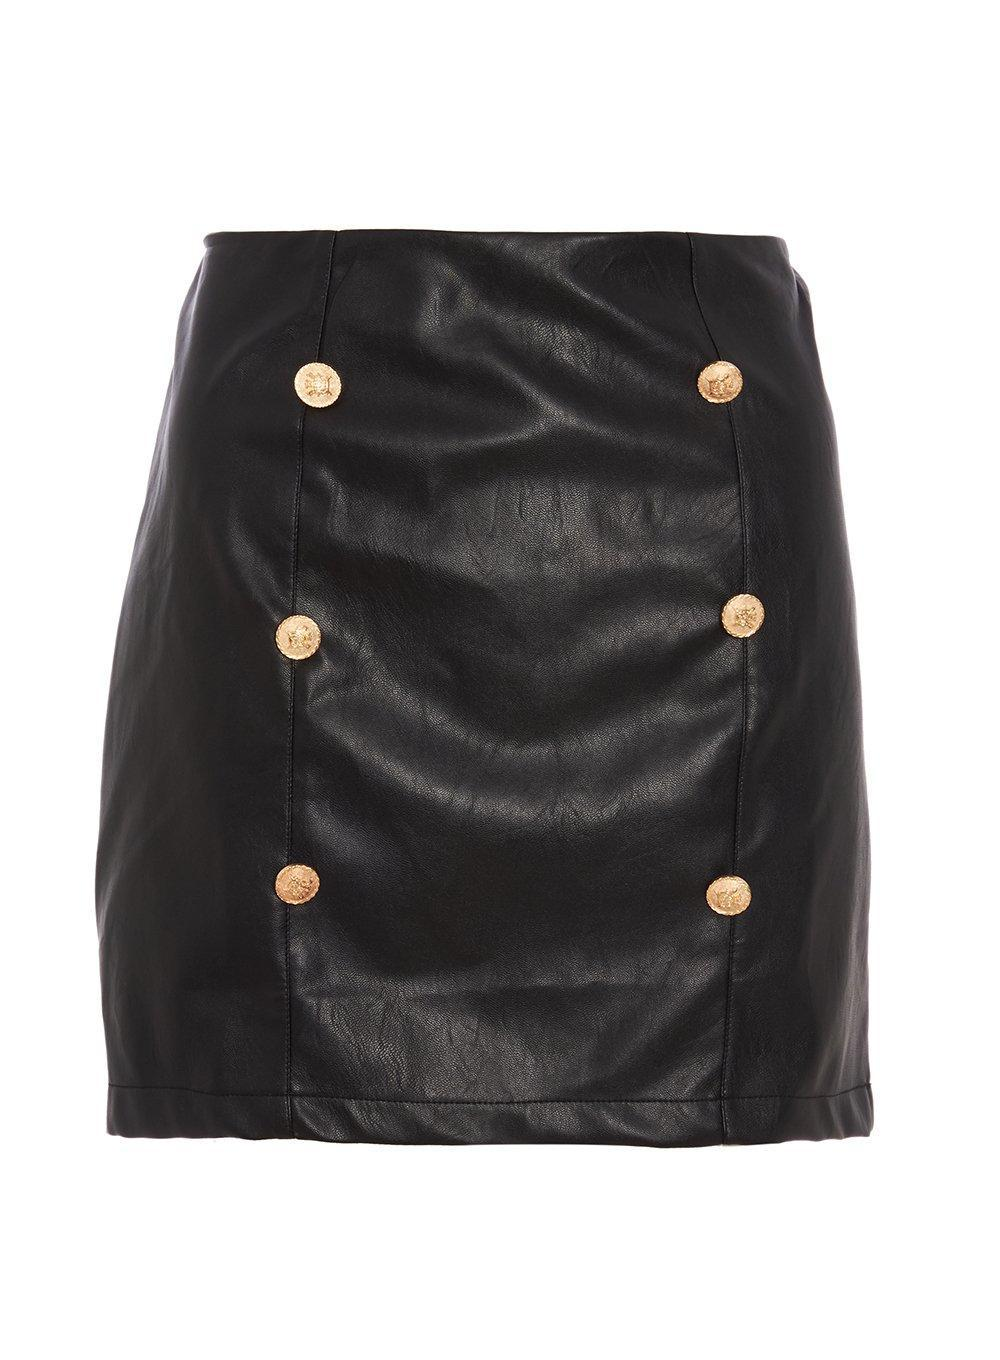 51588d477a Lyst - Dorothy Perkins Quiz Black And Gold Button Skirt in Black